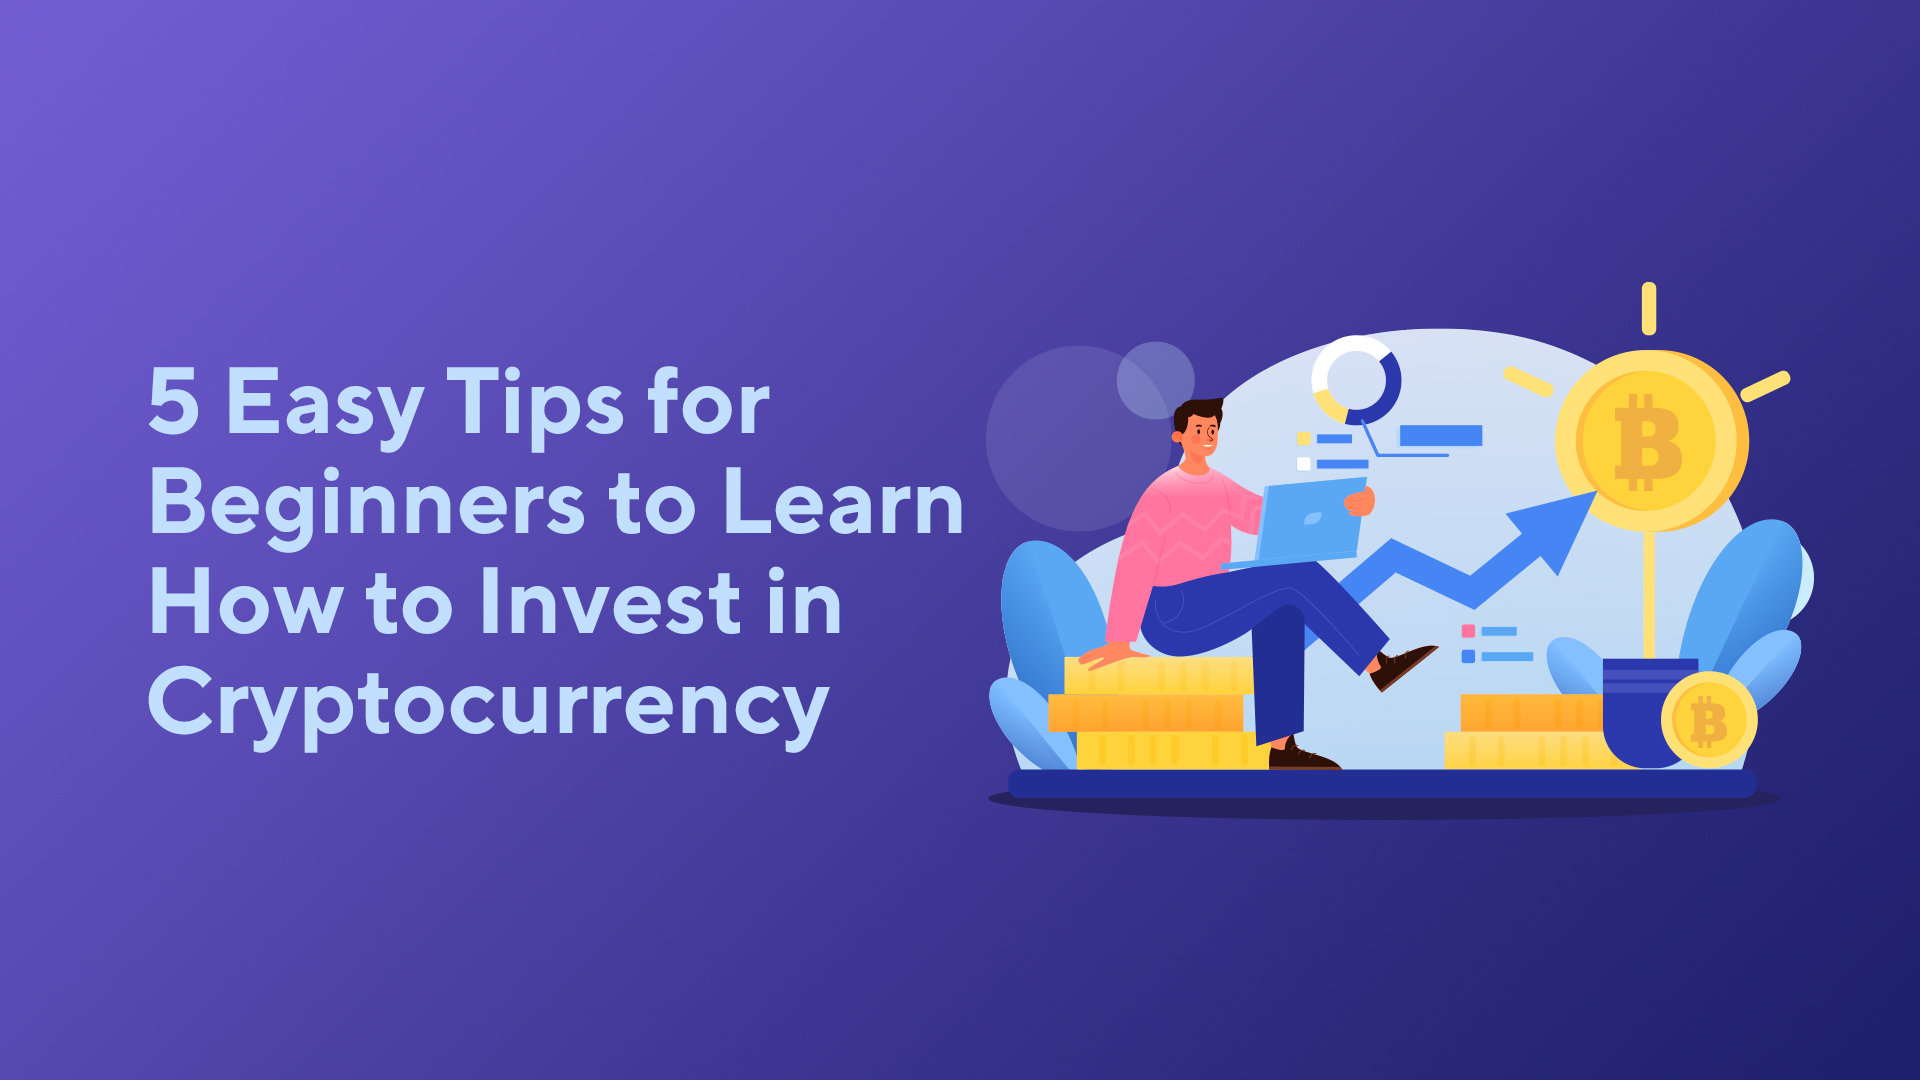 5 Easy Tips for Beginners to Learn How to Invest in Cryptocurrency